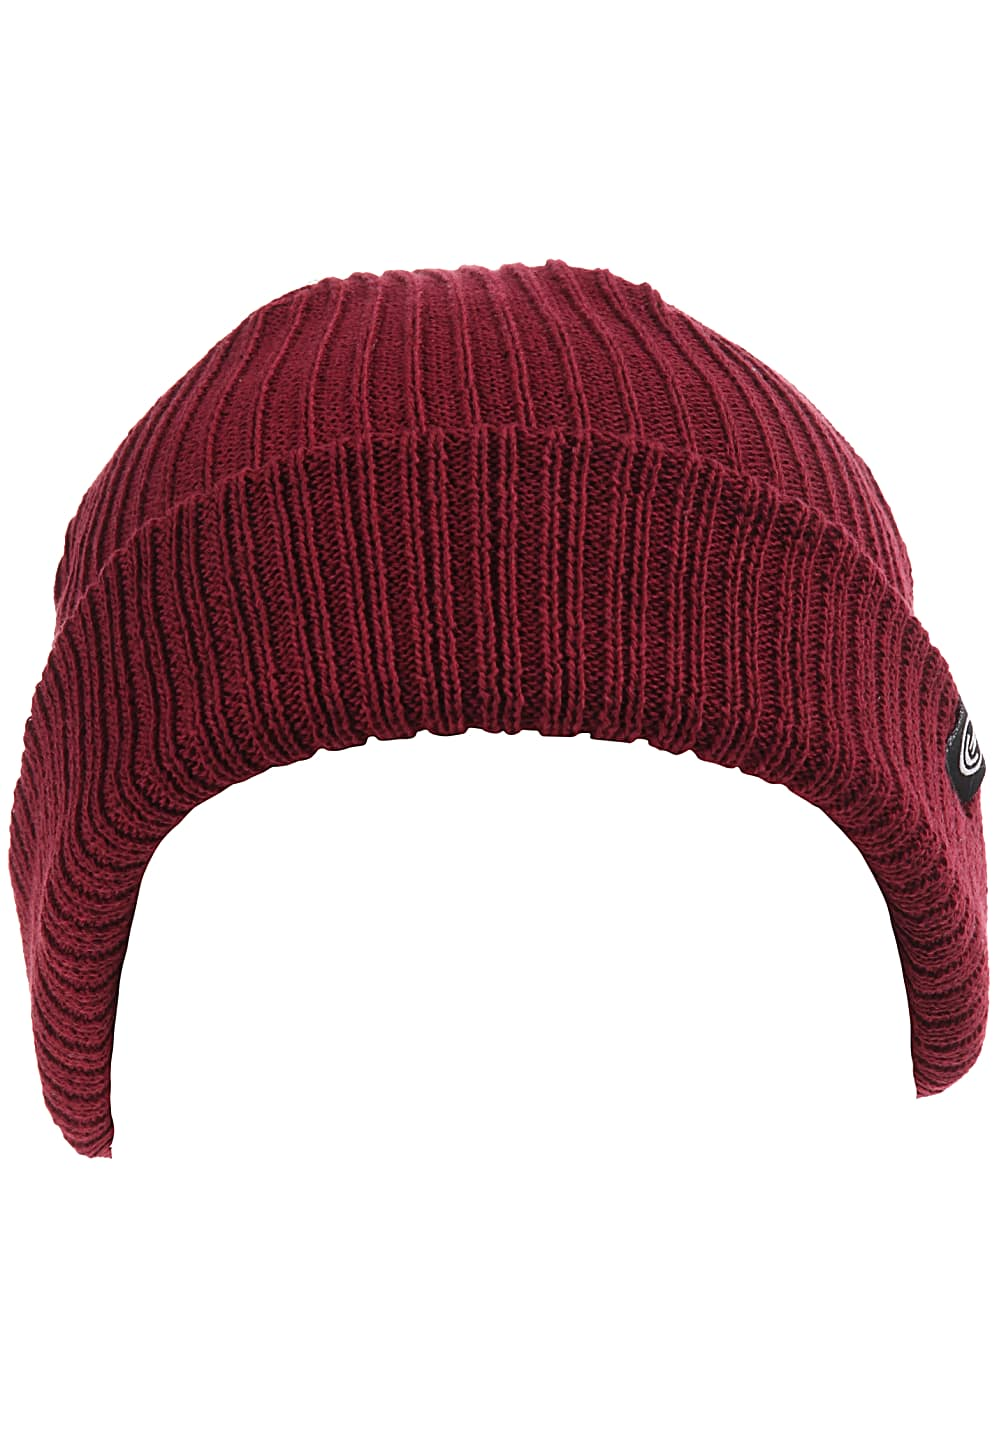 NEFF Fisherman - Beanie - Red - Planet Sports 99122584c245